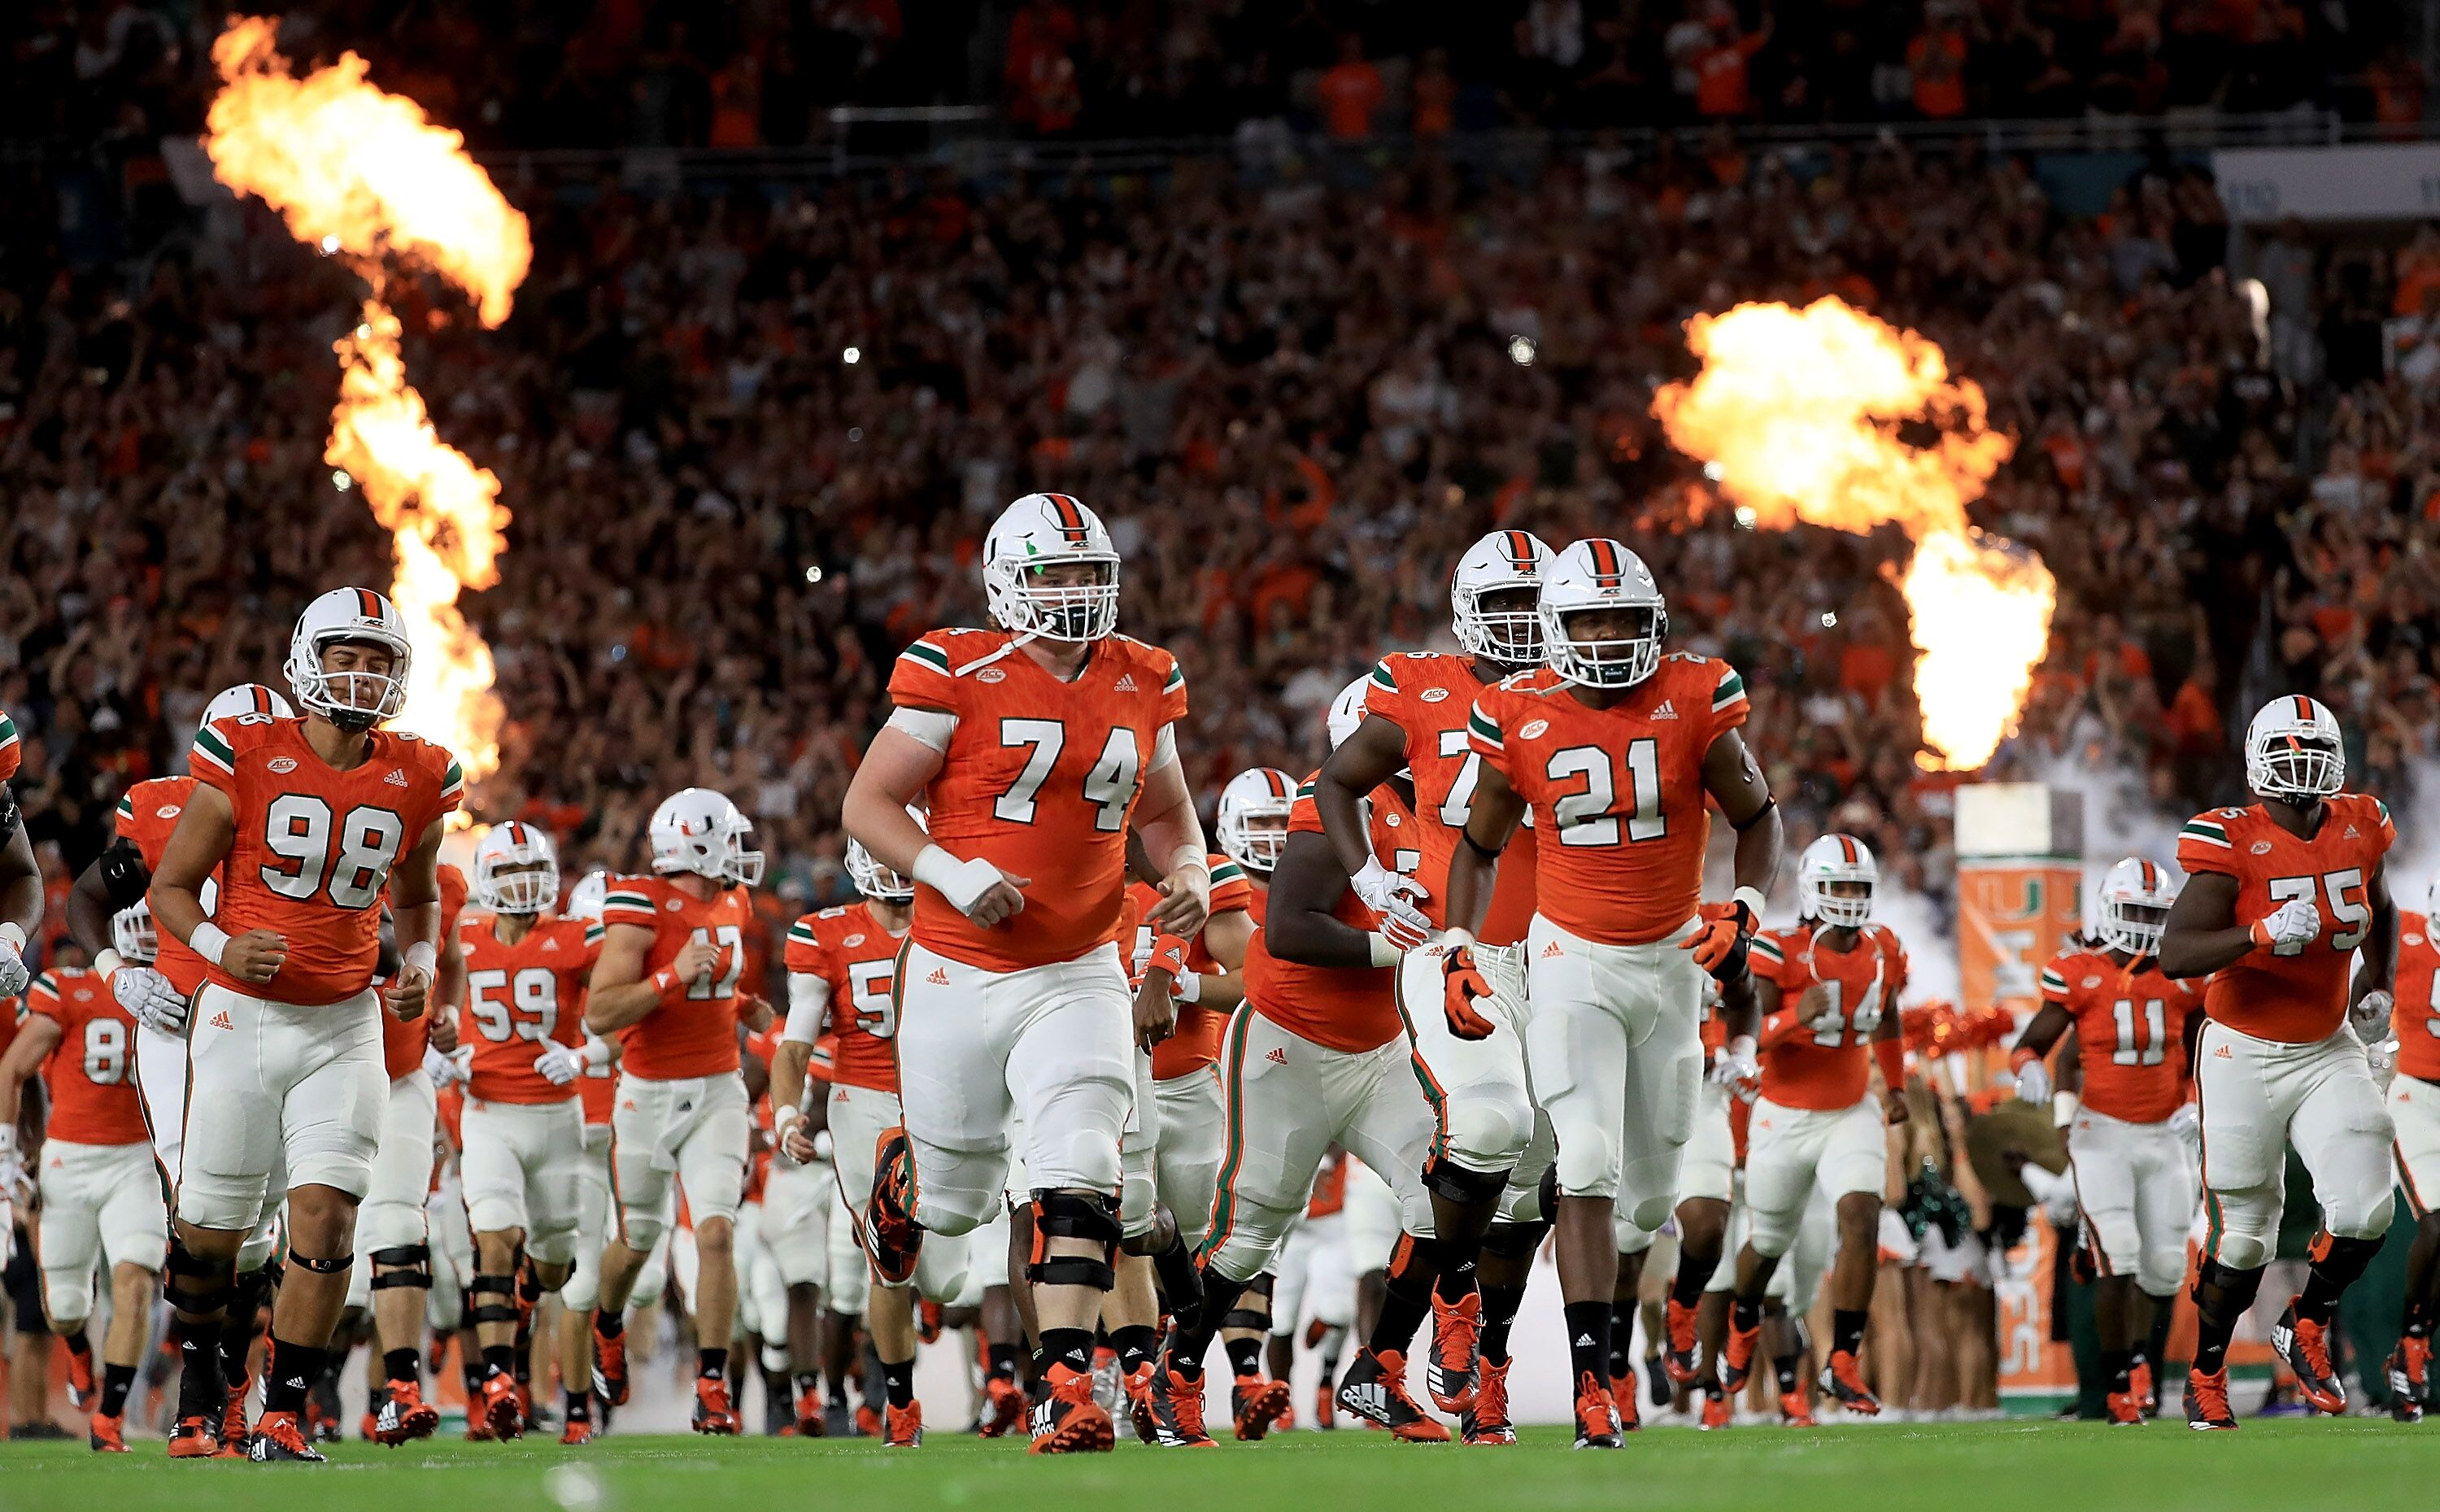 Manny Diaz: Losing will not be tolerated by Miami football team